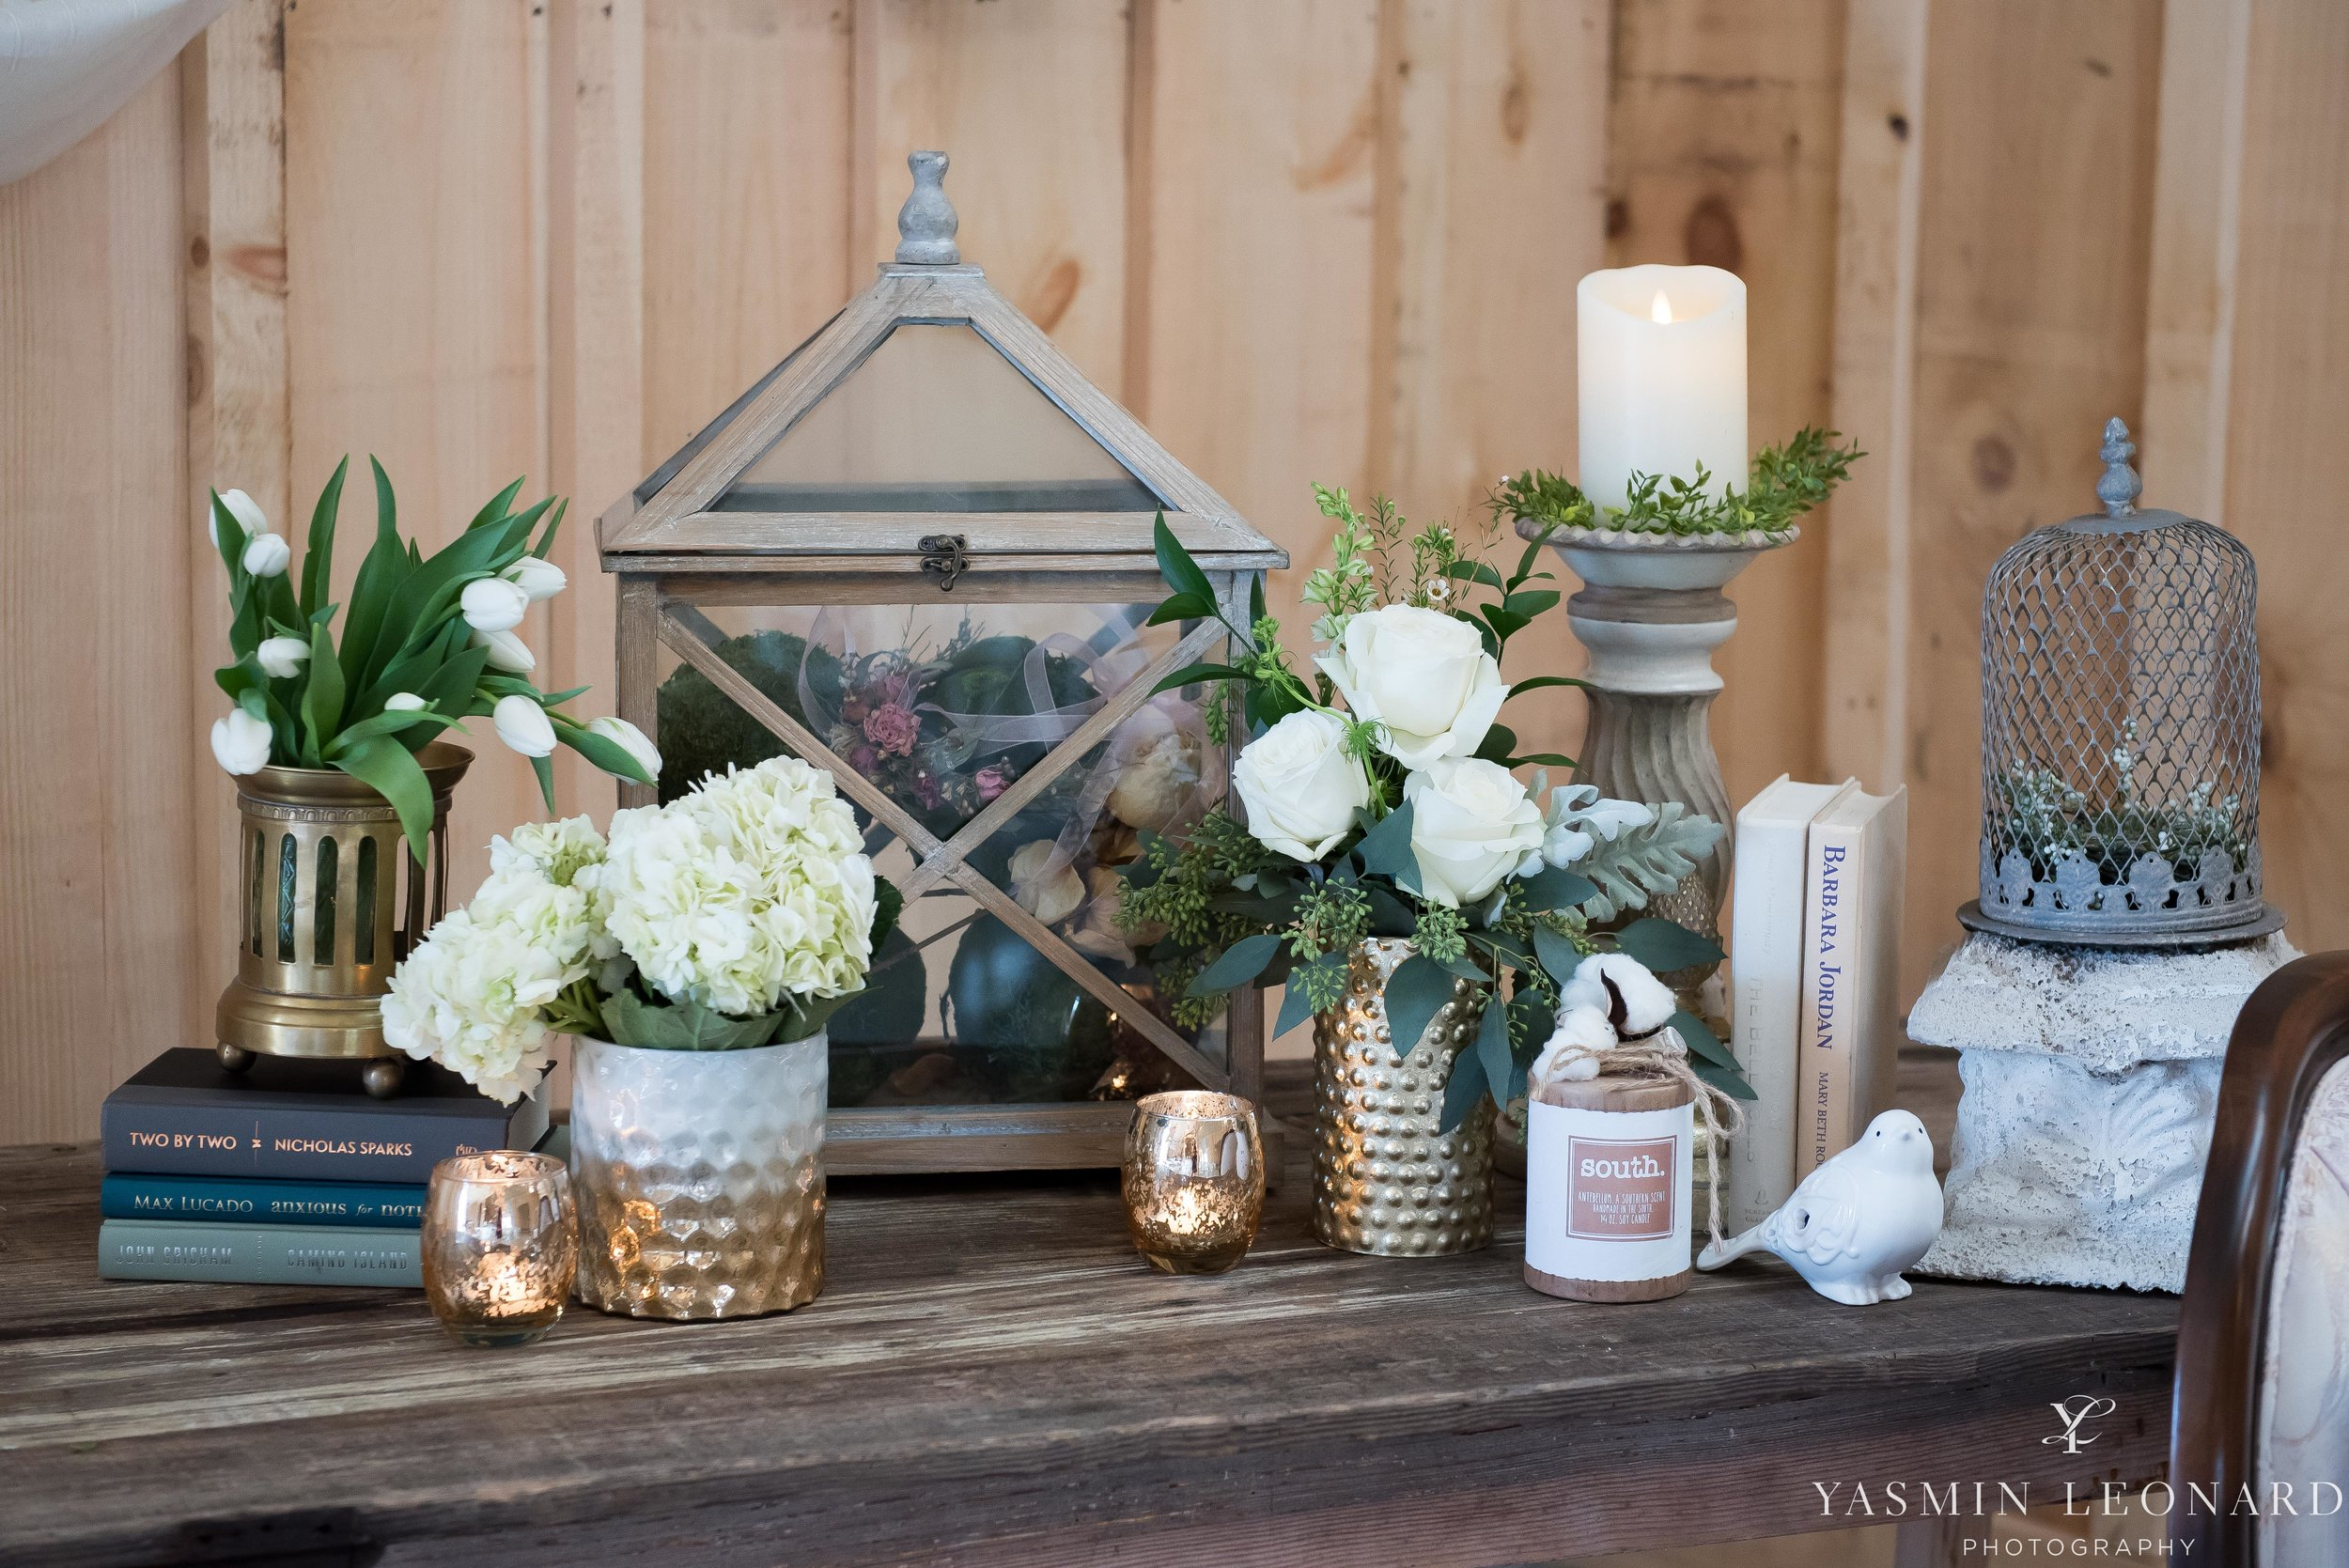 Old Homeplace Vineyard - Grits and Glitter - Dashing Dames Bridal Boutique - Just Priceless - Yasmin Leonard Photography - High Point Weddings - NC Weddings - NC Wedding Venues - High Point Jewelers - NC Wines - NC Vineyards - Cupcake Cuties-15.jpg